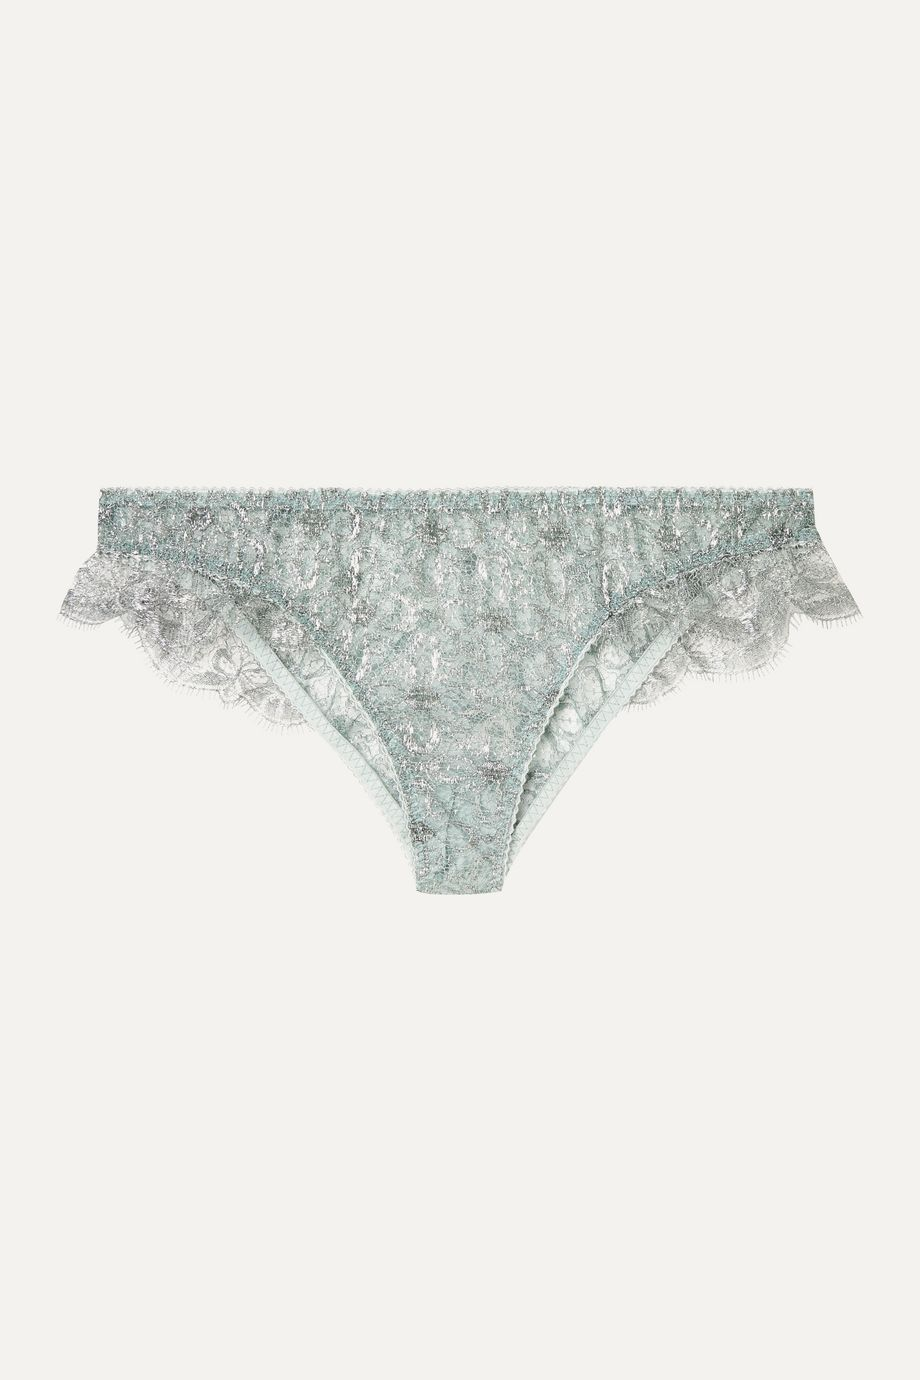 Myla Rosemoor Street metallic Leavers lace briefs